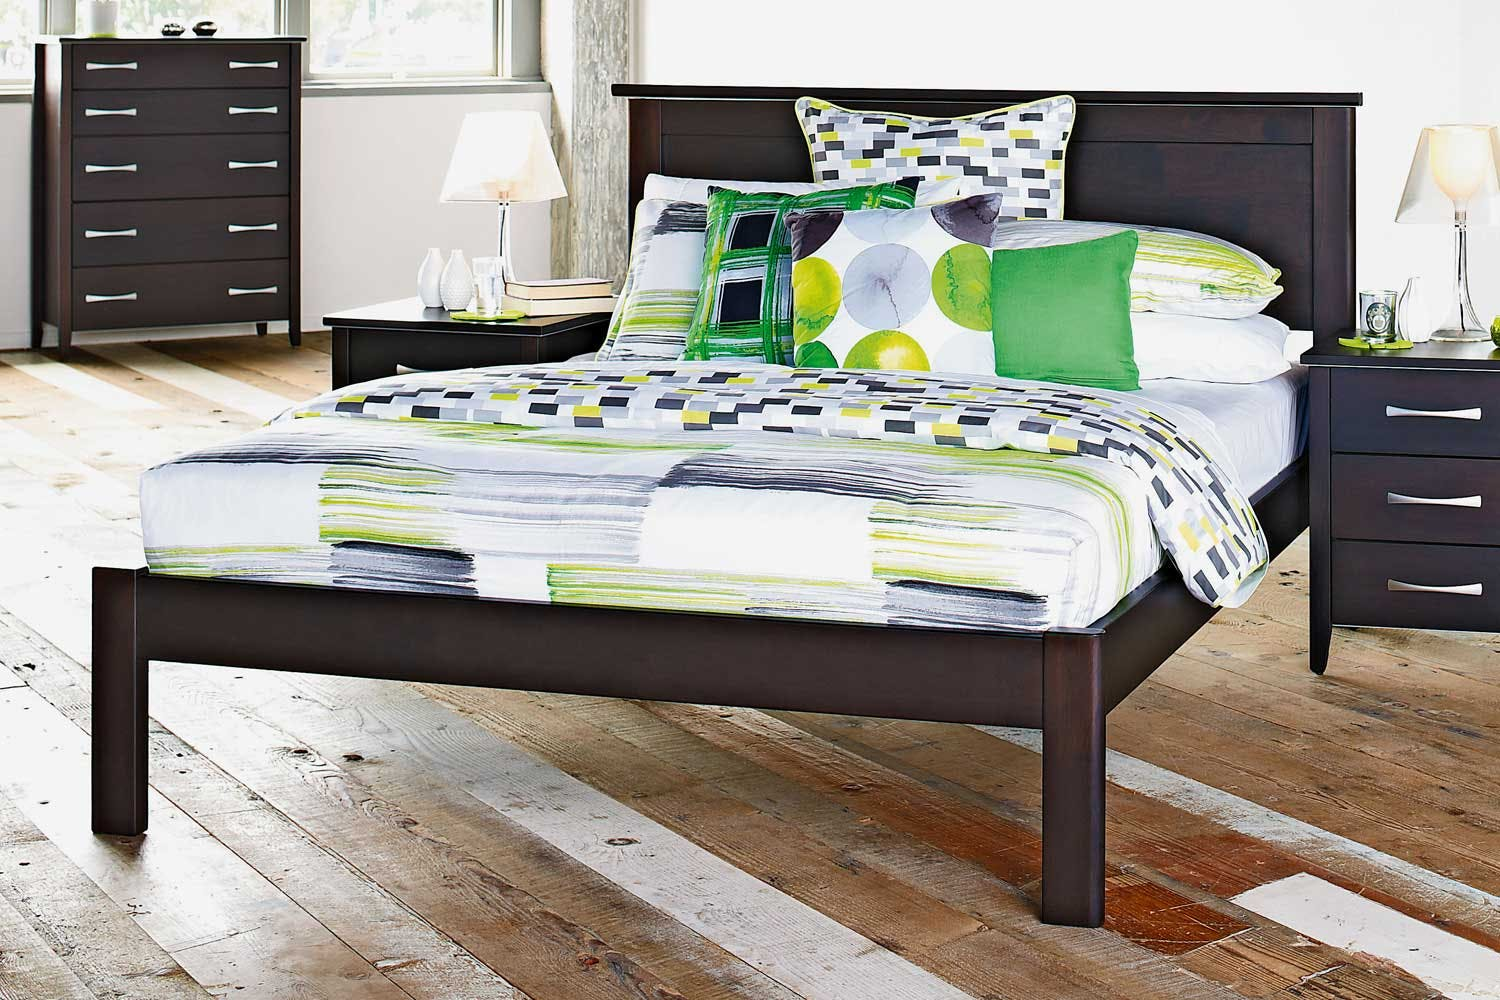 Image of Chicago King Single Bed Frame by Coastwood Furniture